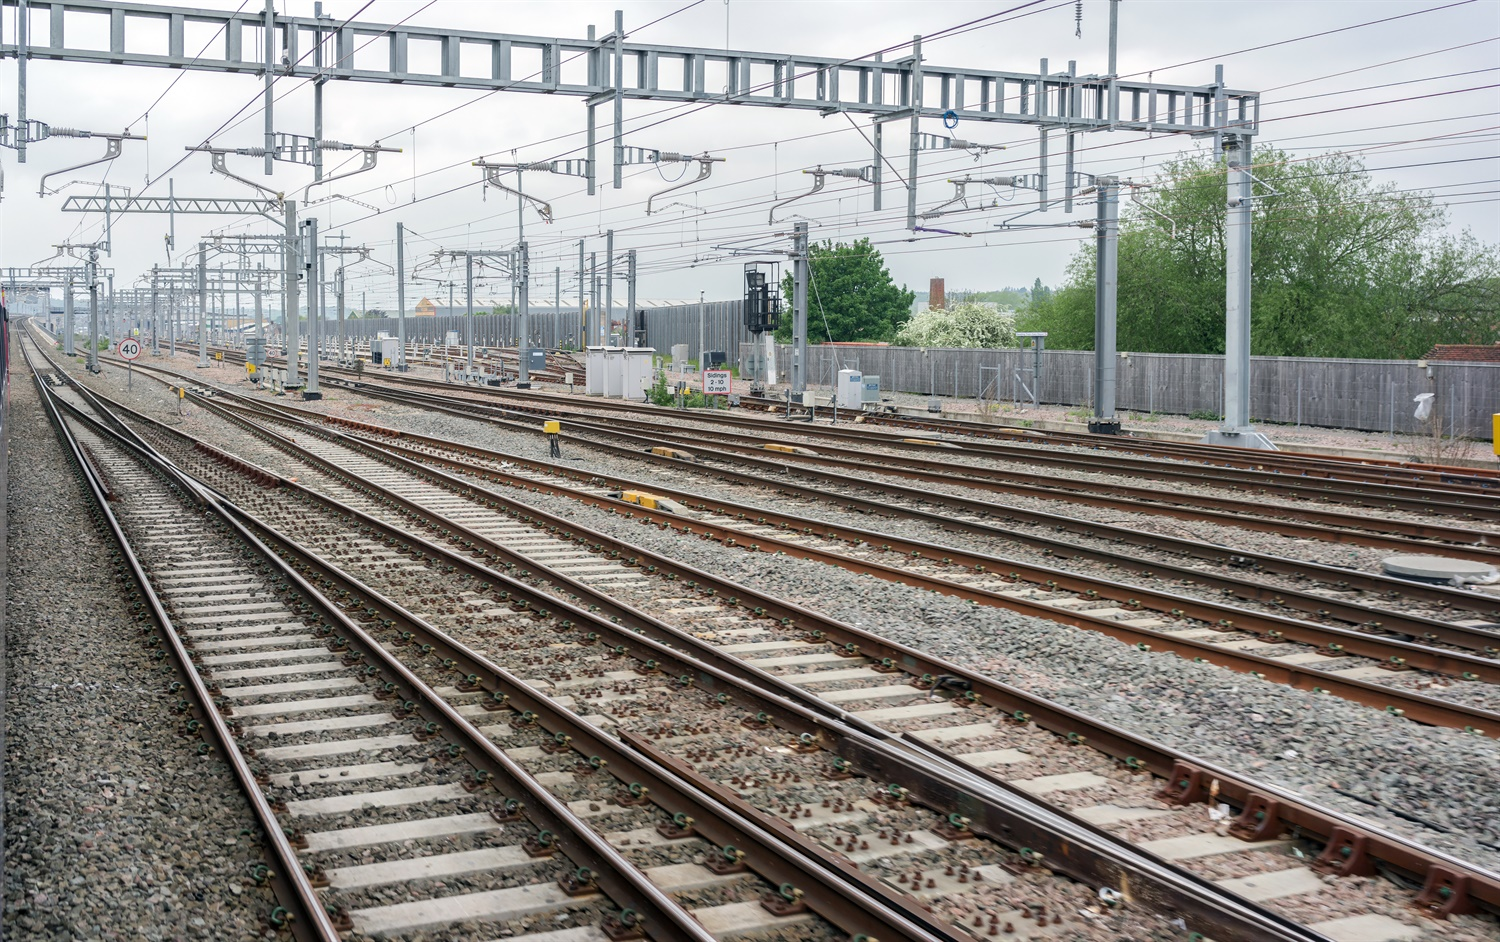 DfT calls for intensified monitoring of Network Rail's CP6 readiness to avoid repeat of CP5 'stasis'